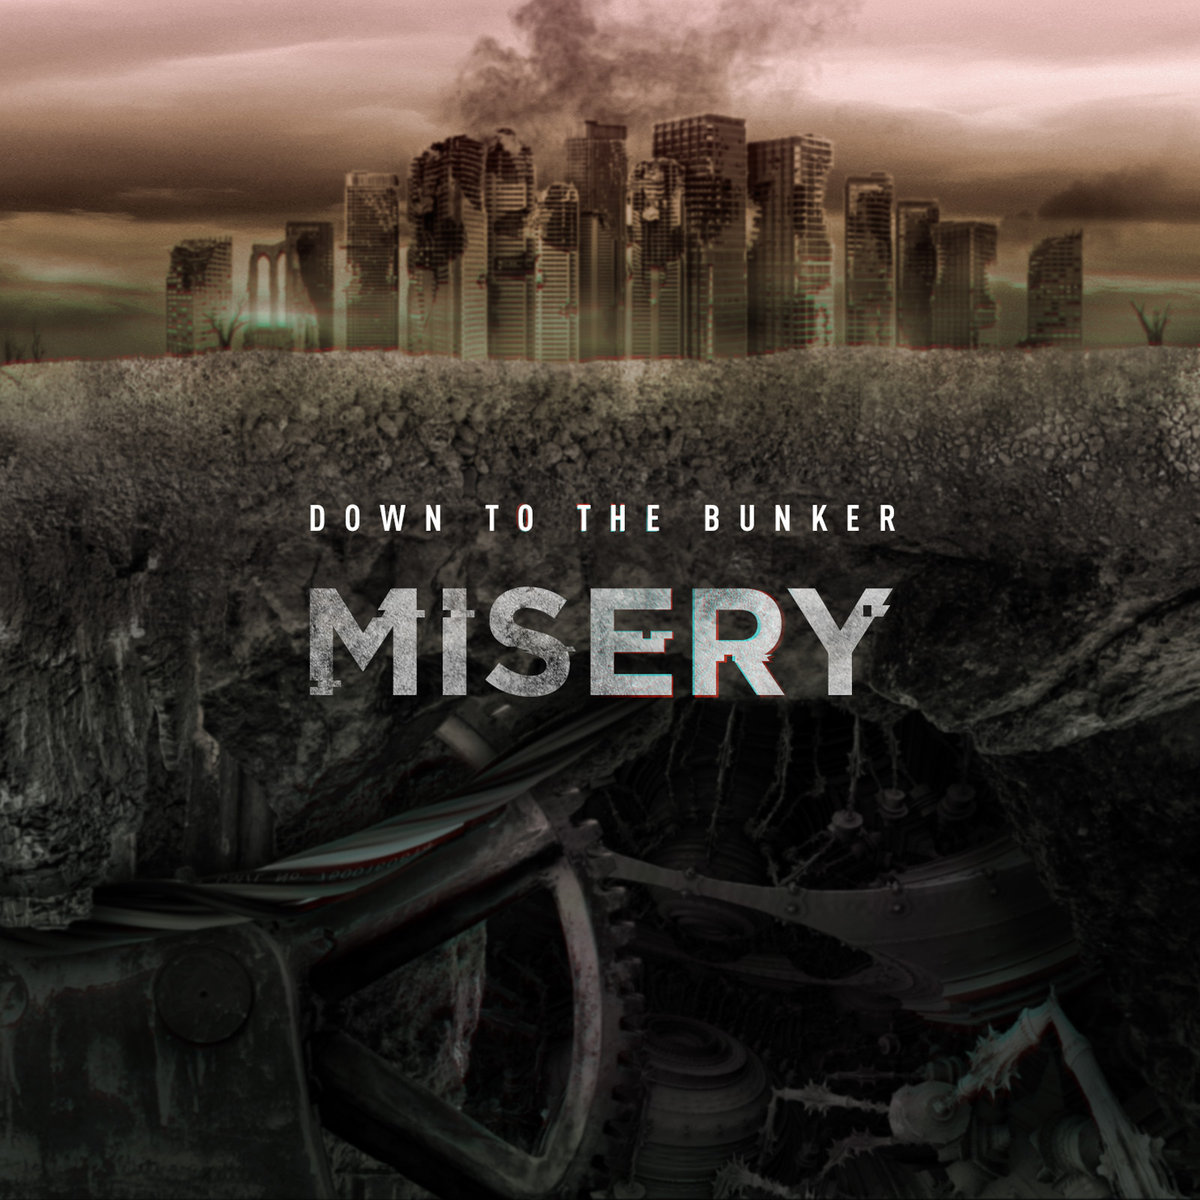 Down to the Bunker: Misery